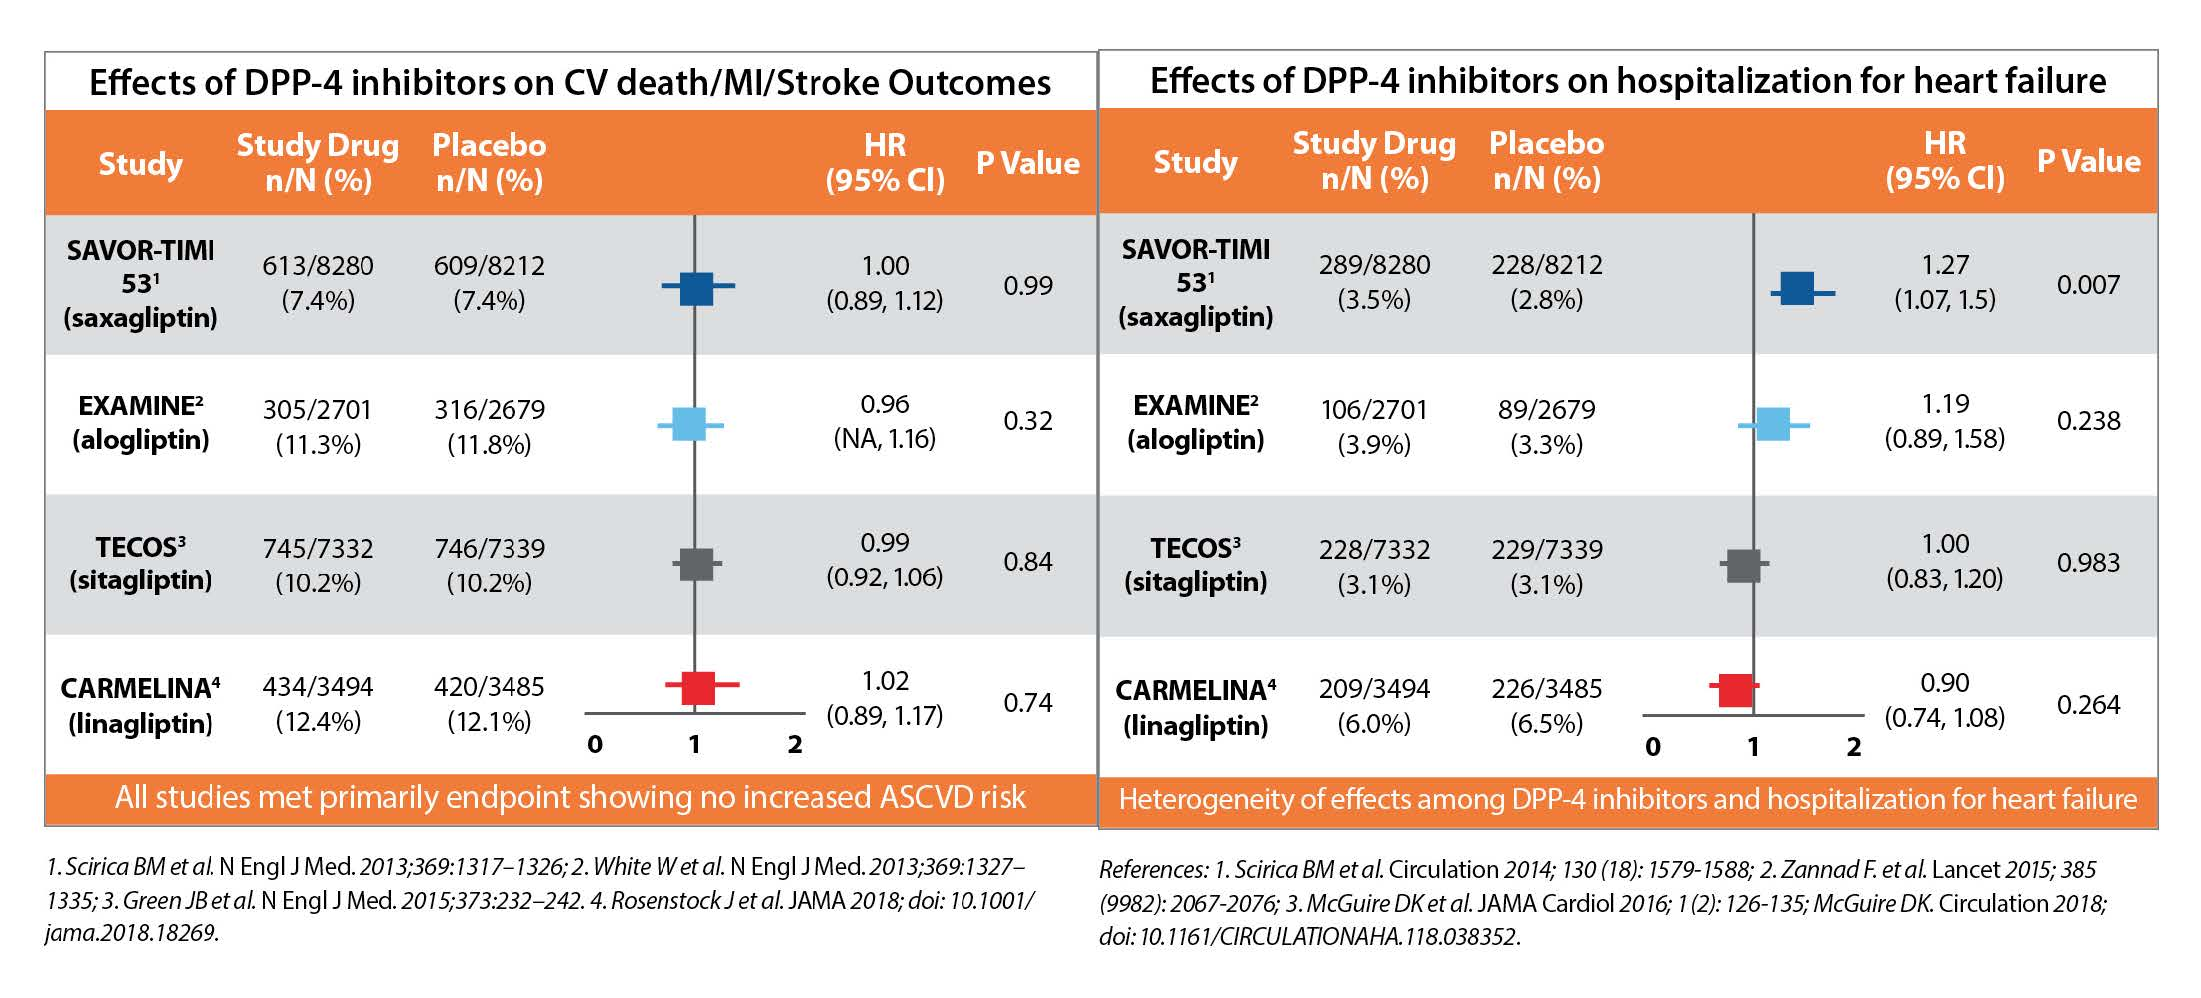 Effects of Linagliptin on Heart Failure_Table